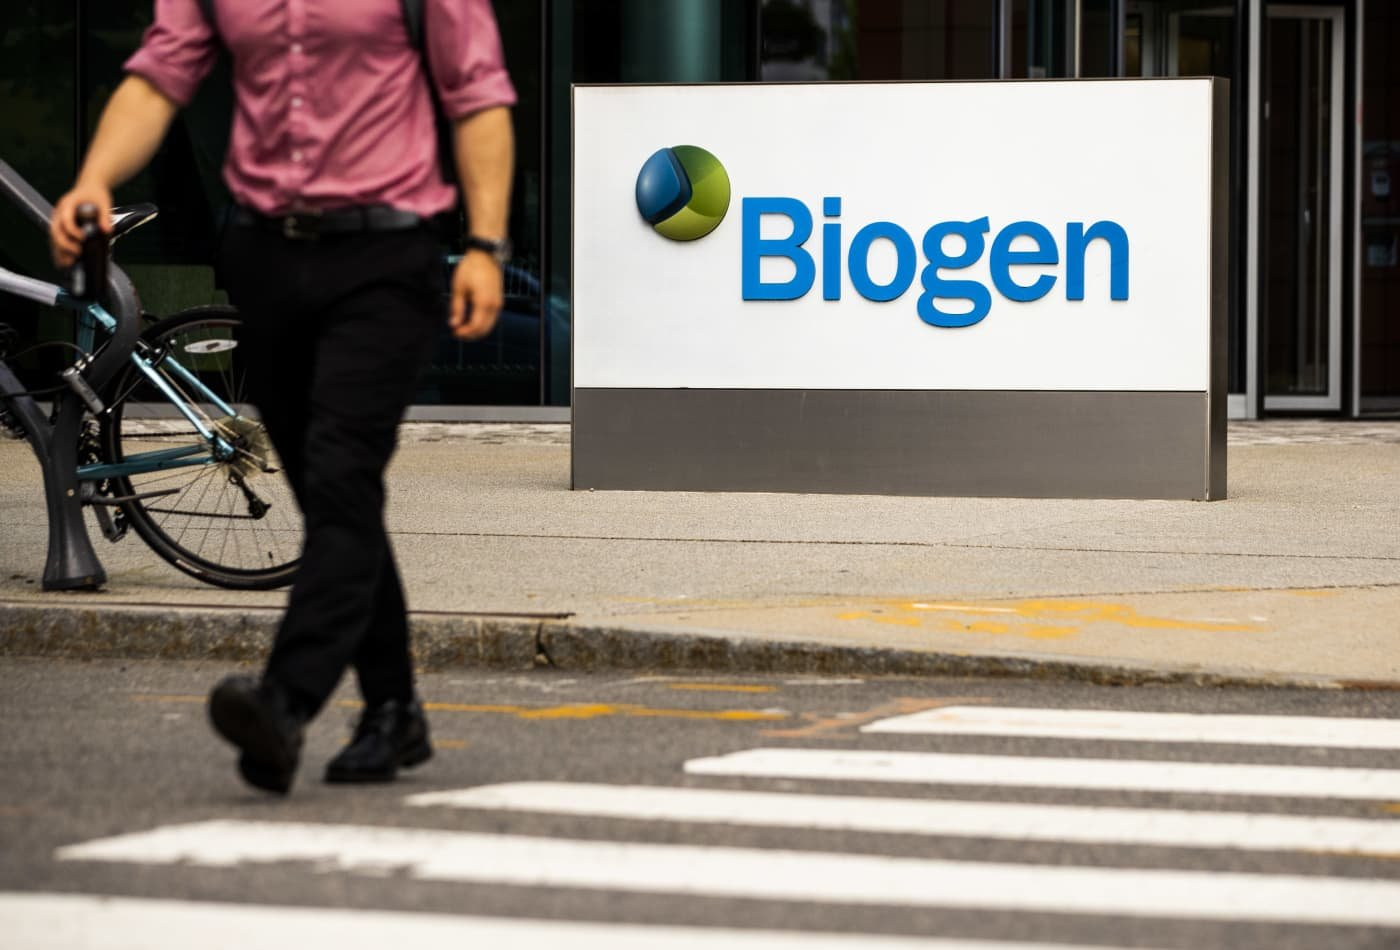 FDA chief tells reporter 'move on' when pressed on Biogen Alzheimer's drug approval